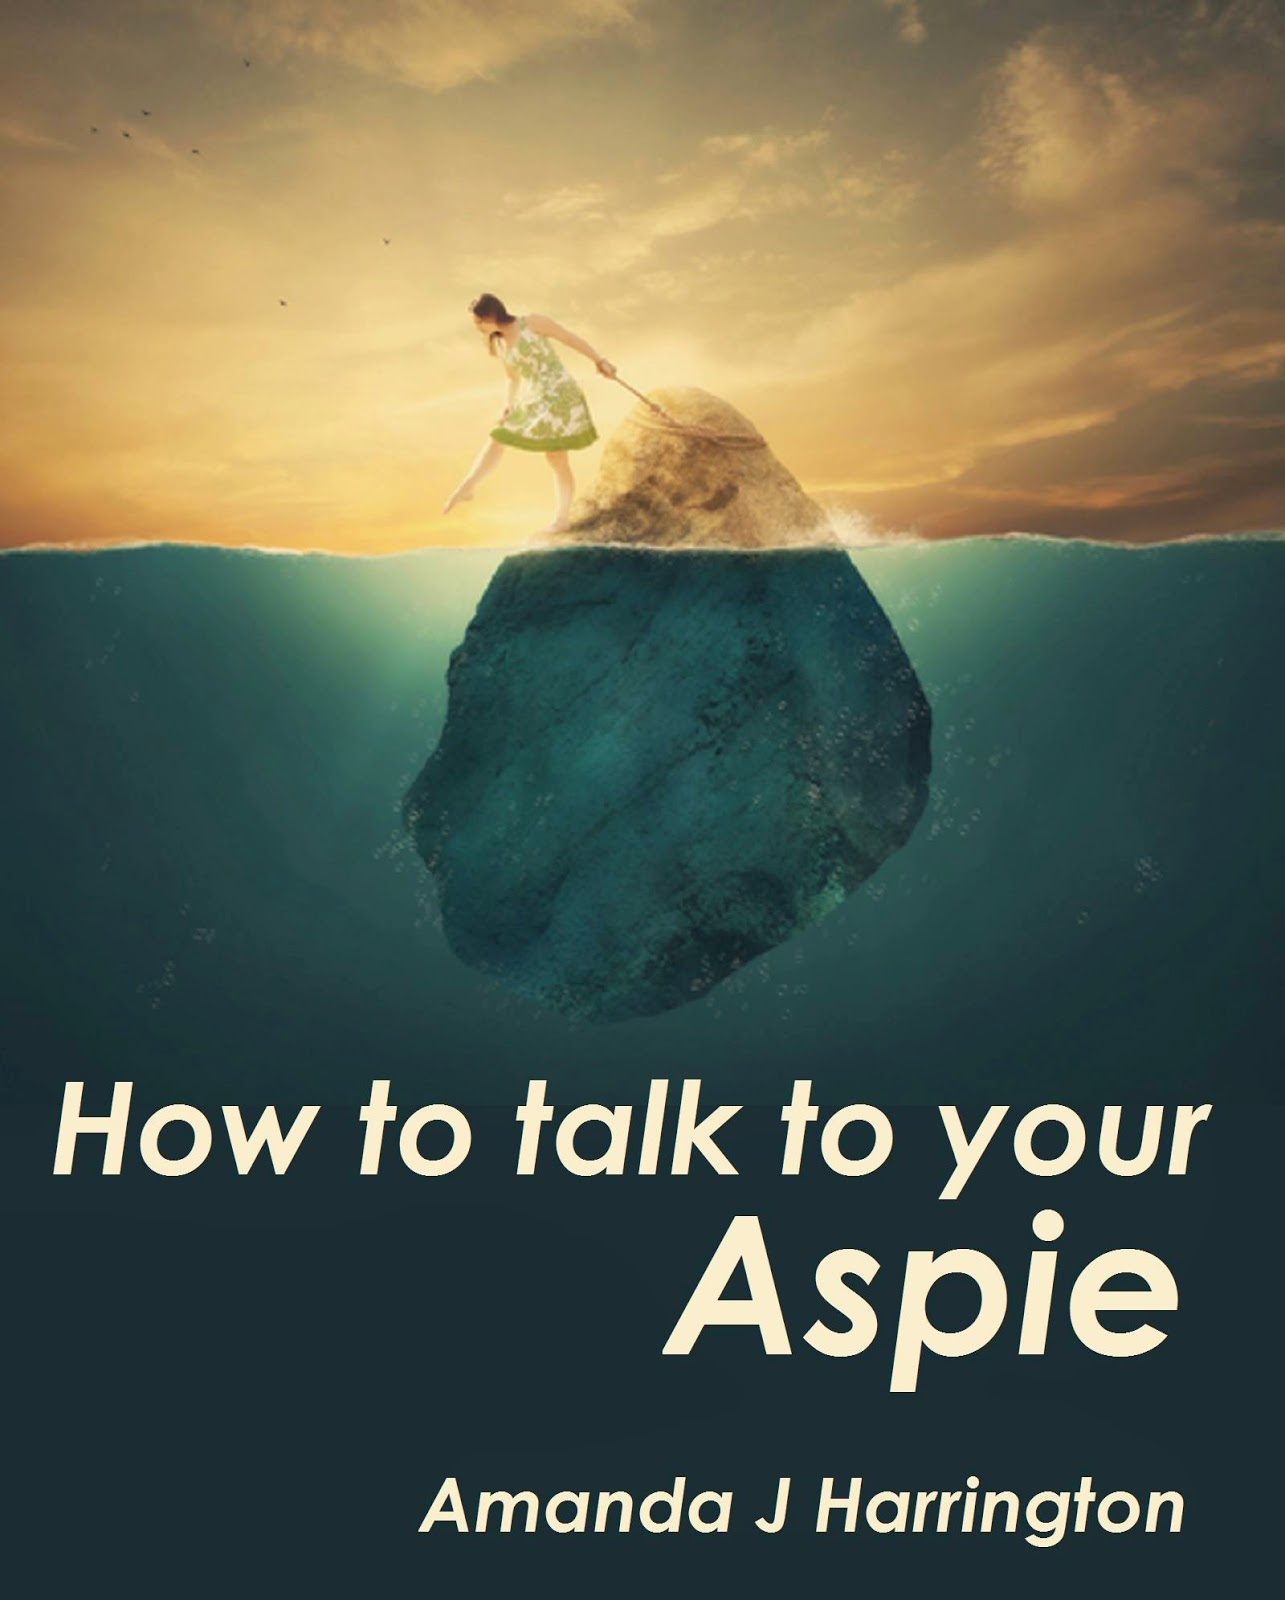 How to talk to your Aspie